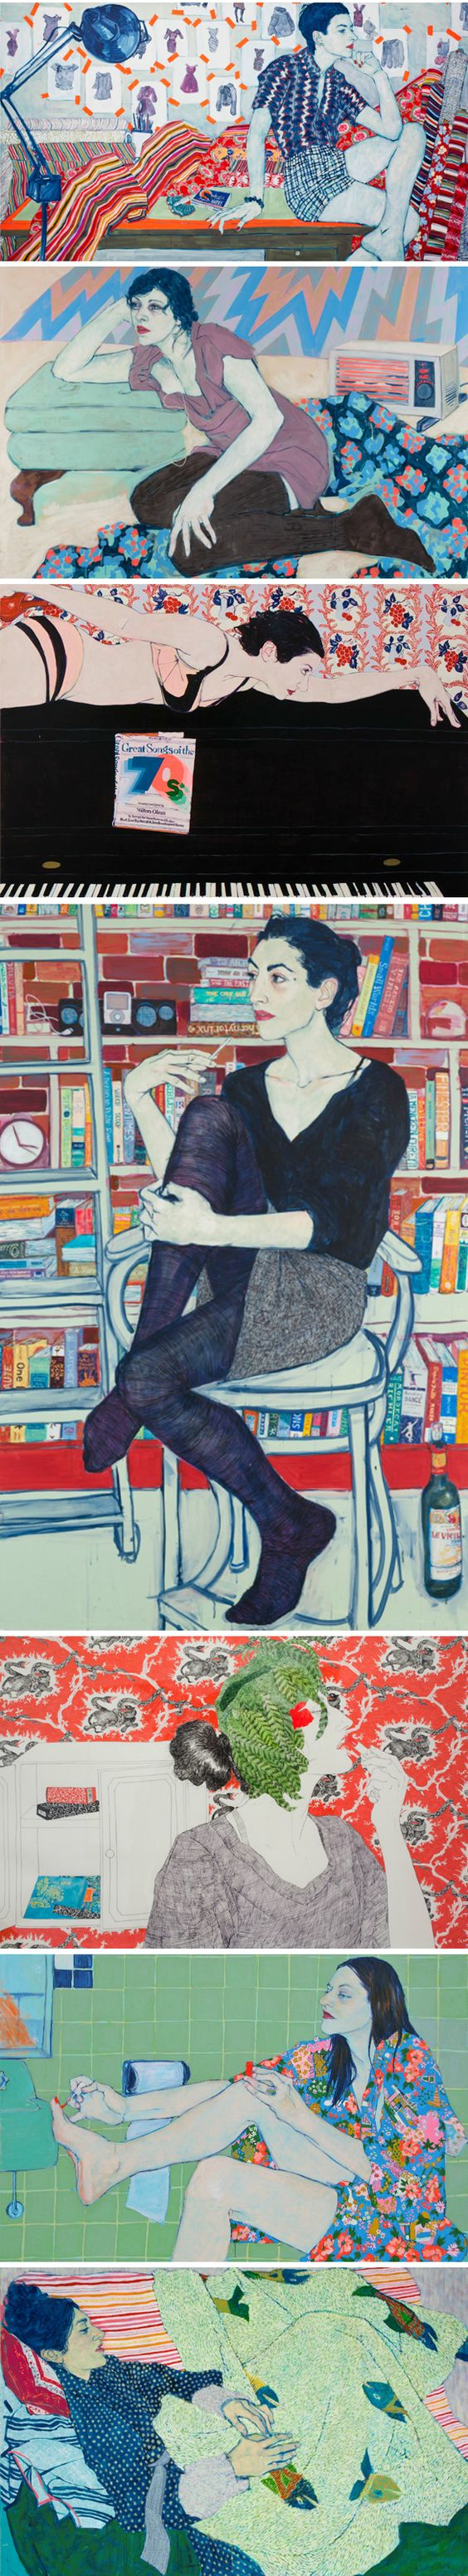 hope gangloff (The Jealous Curator):